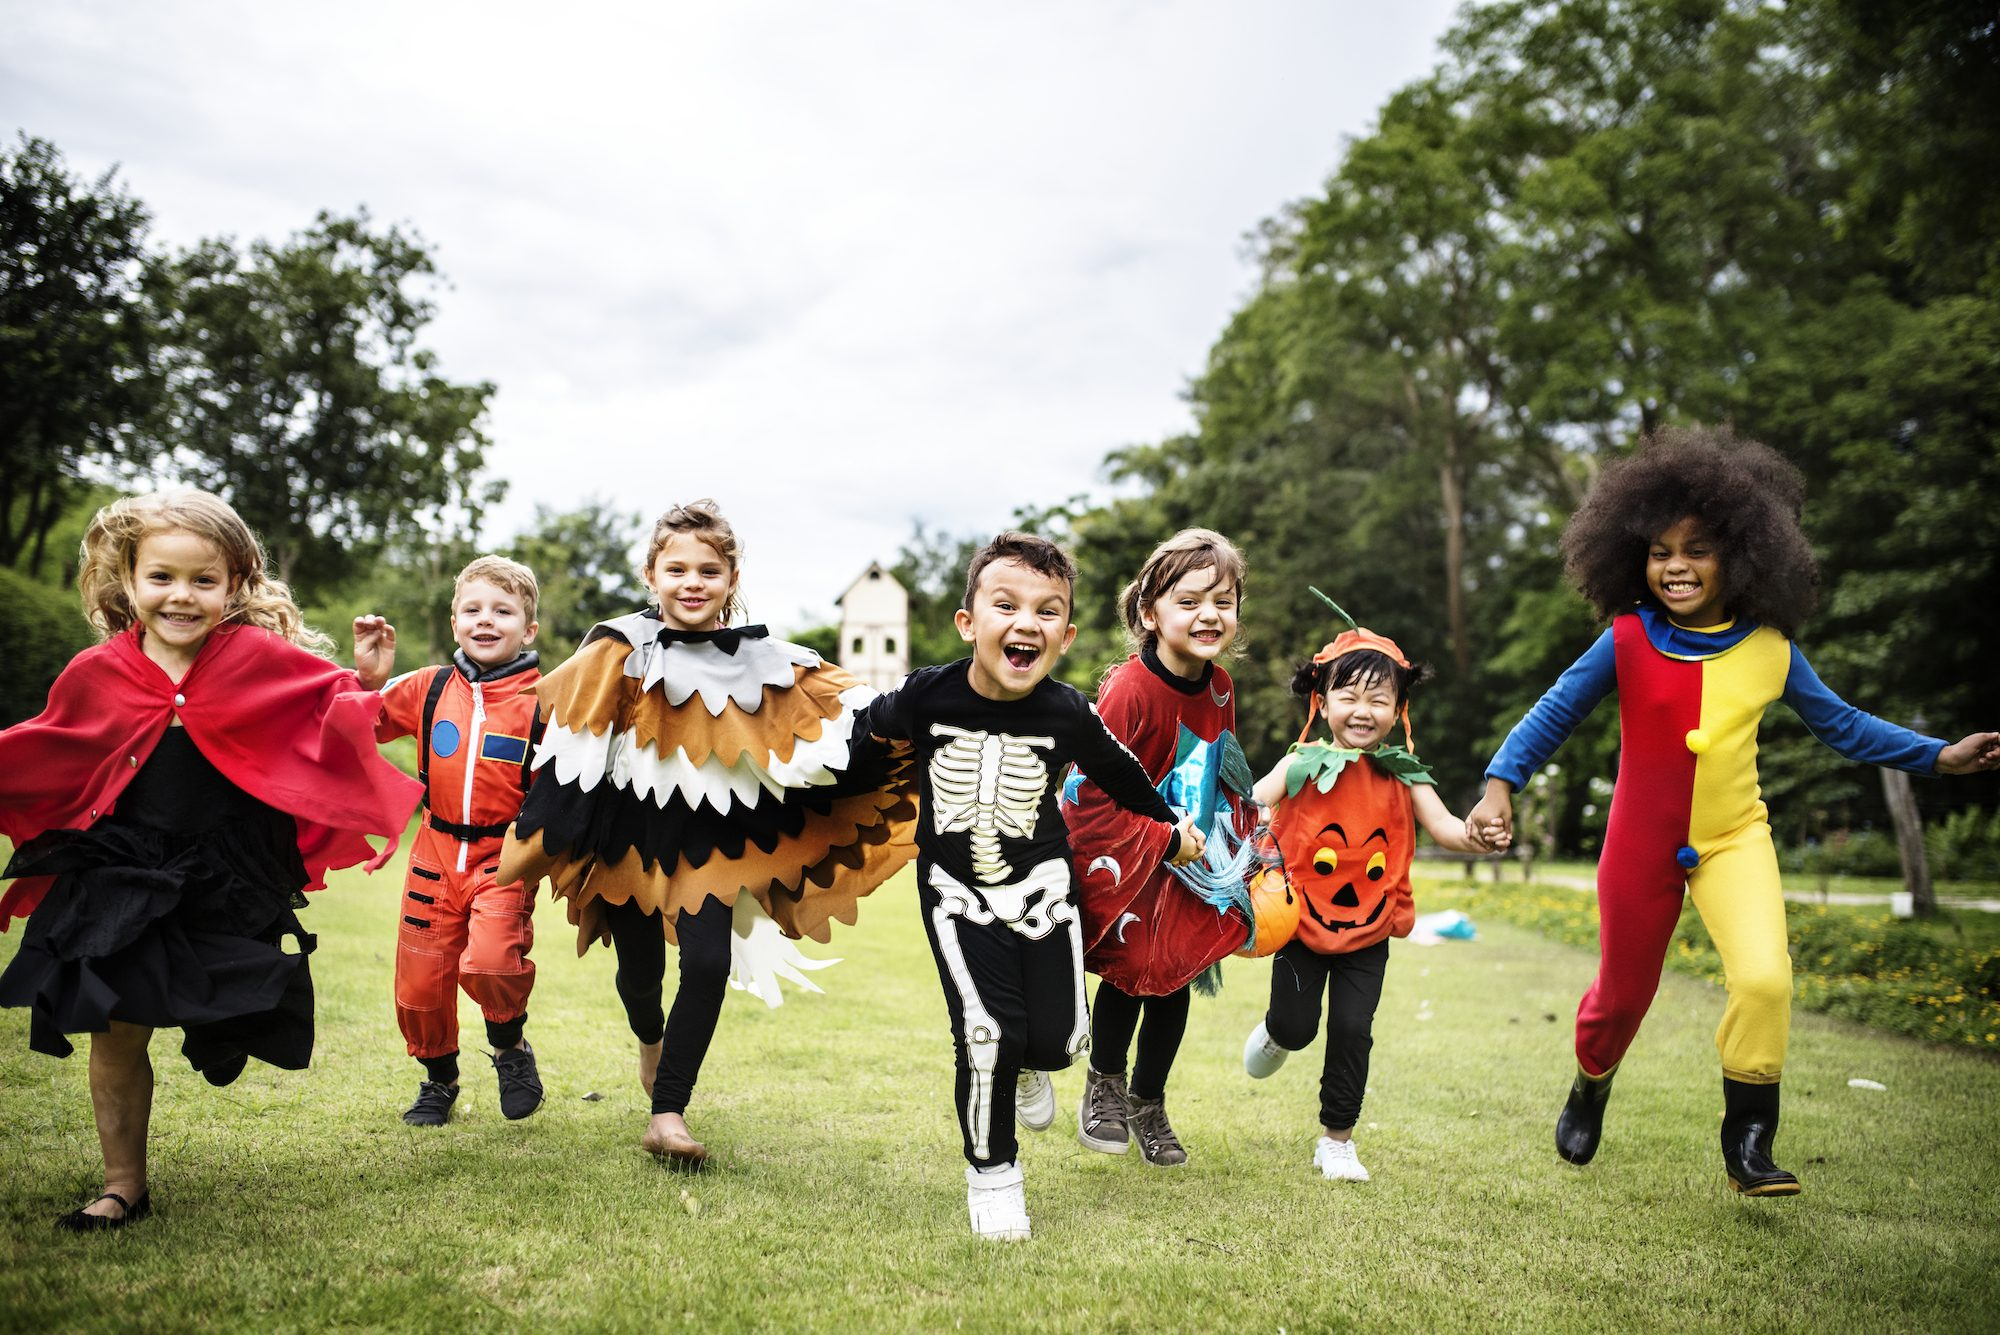 5 Easy Ways to Have a Happy, Healthy Halloween